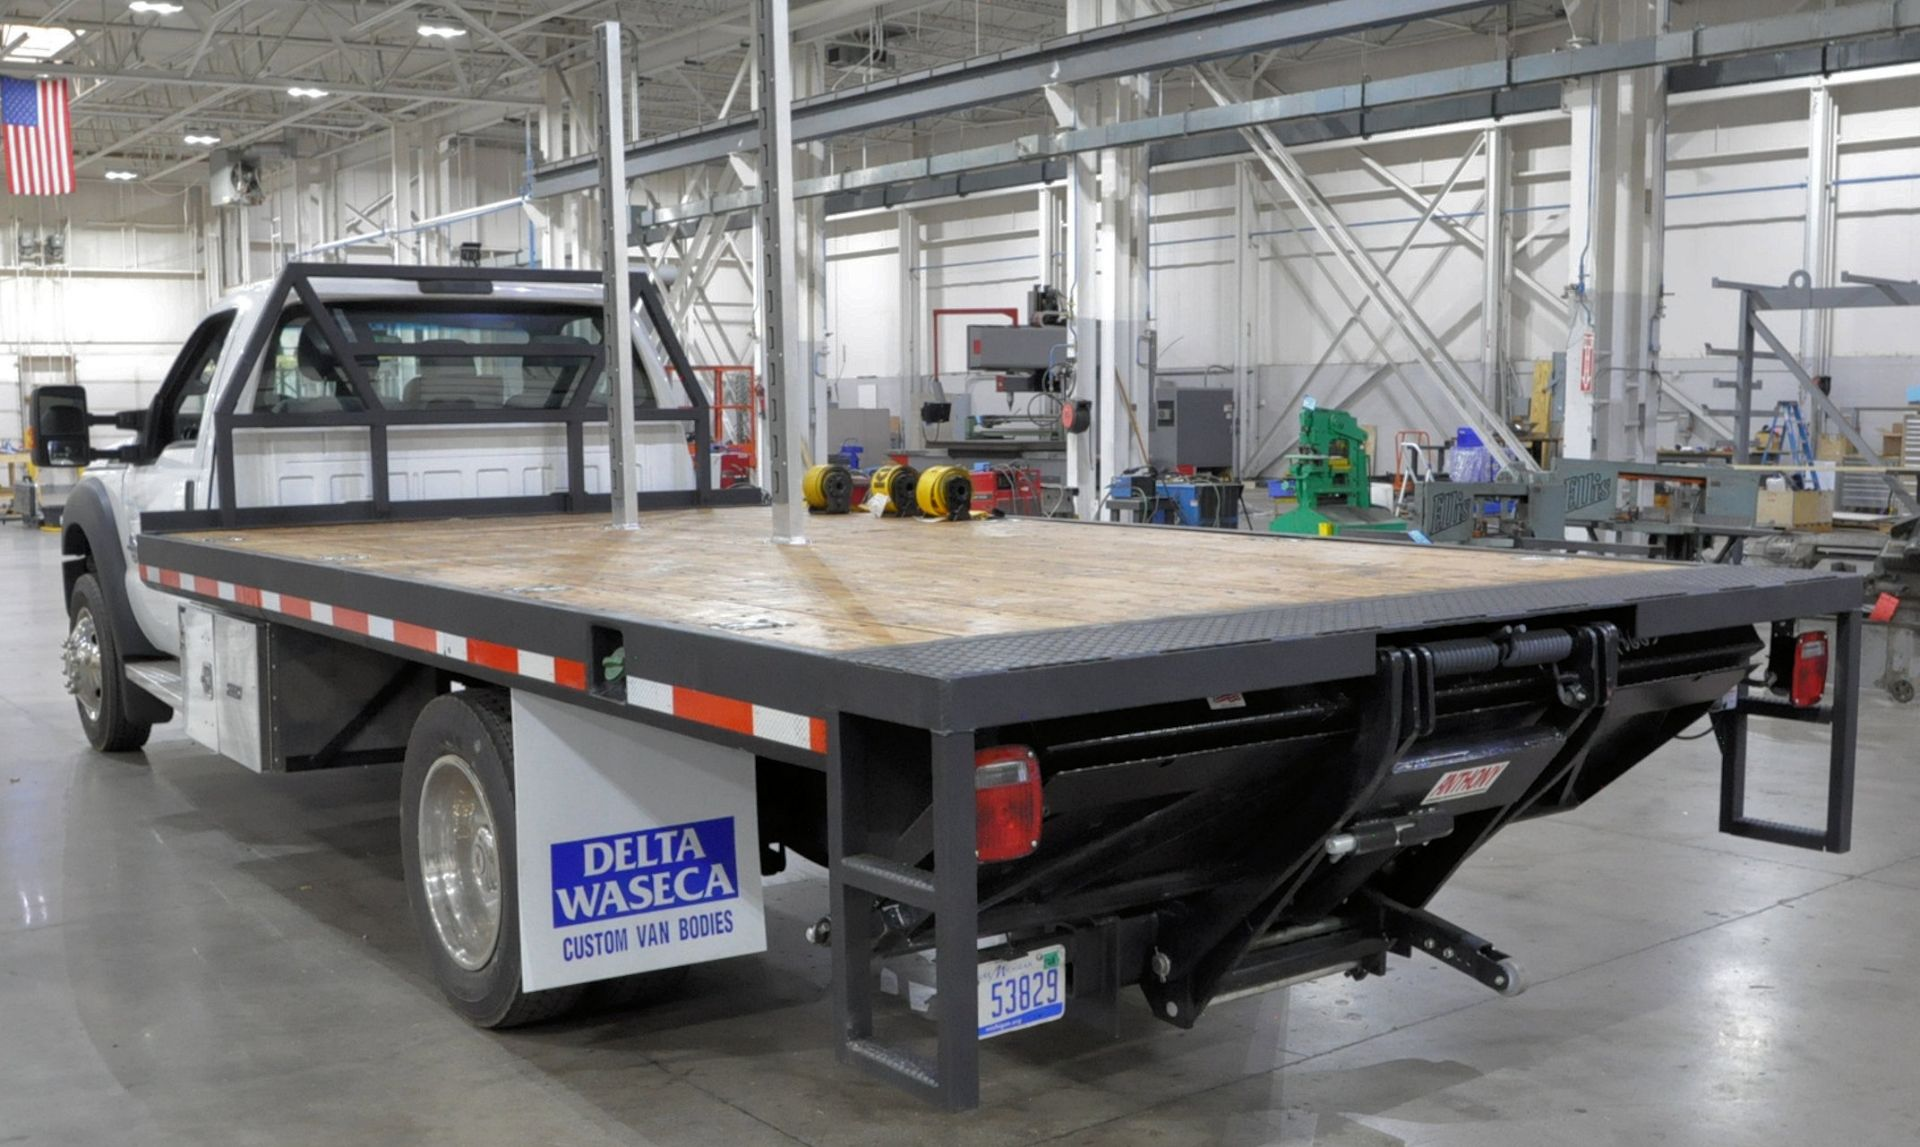 2015 Ford F550 XLT Super Duty Single Axle Dual Wheeled Stake Truck, 16' Wood Bed, Air Ride, Diesel - Image 4 of 10